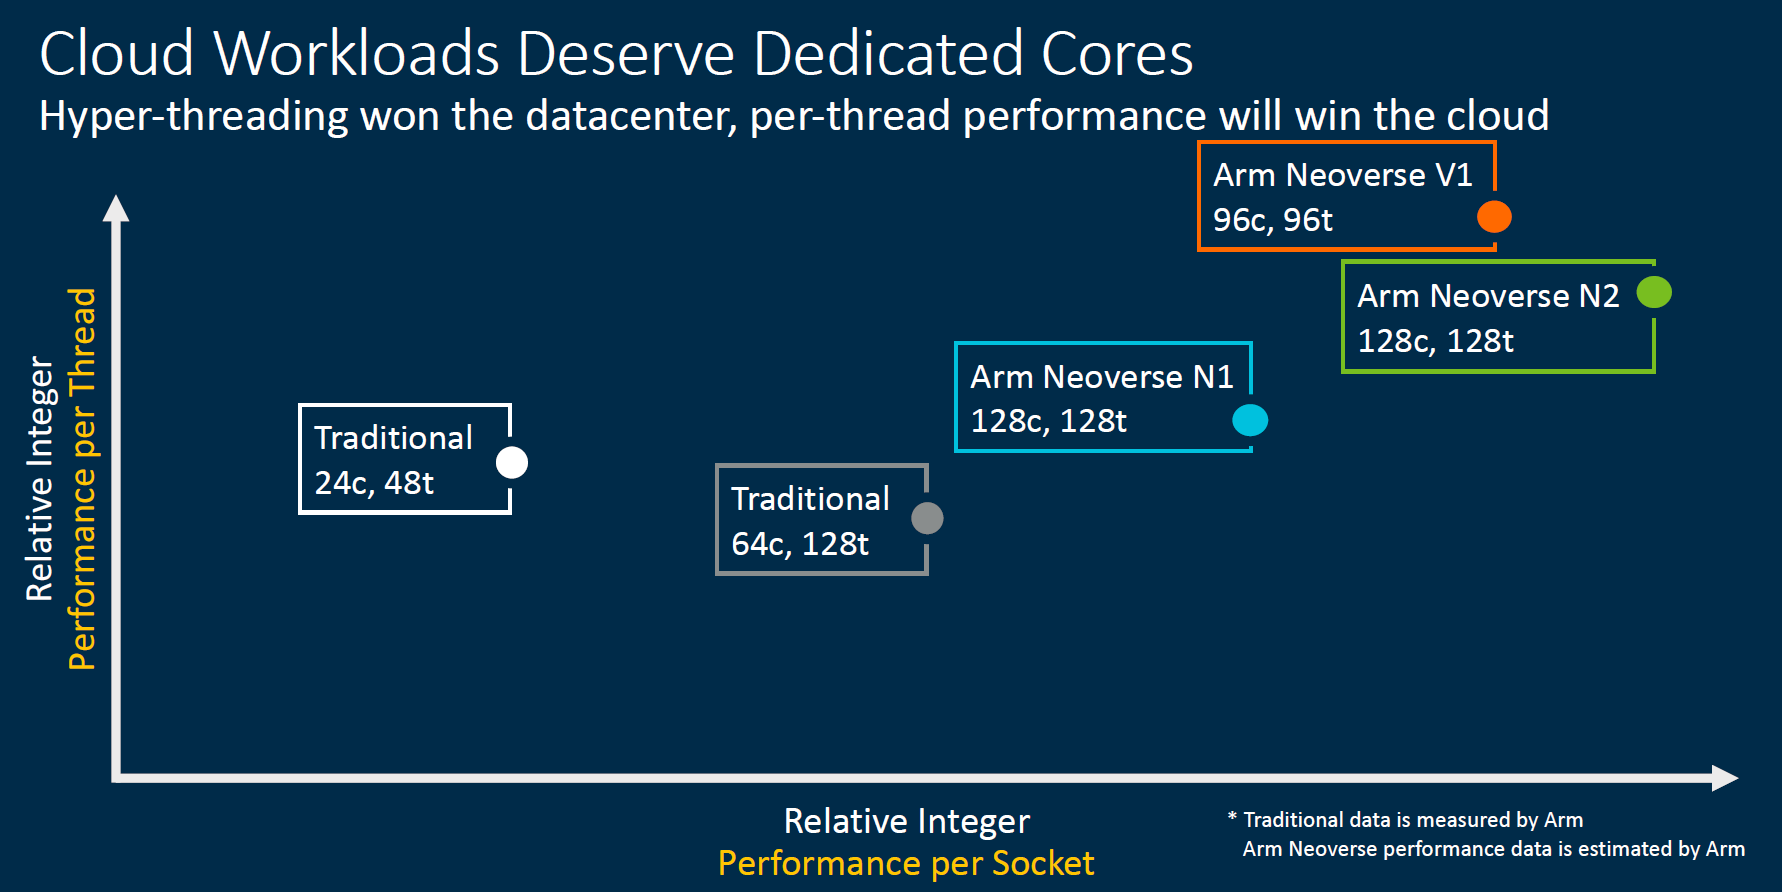 Arm Neoverse V1 And N2 Projected Performance